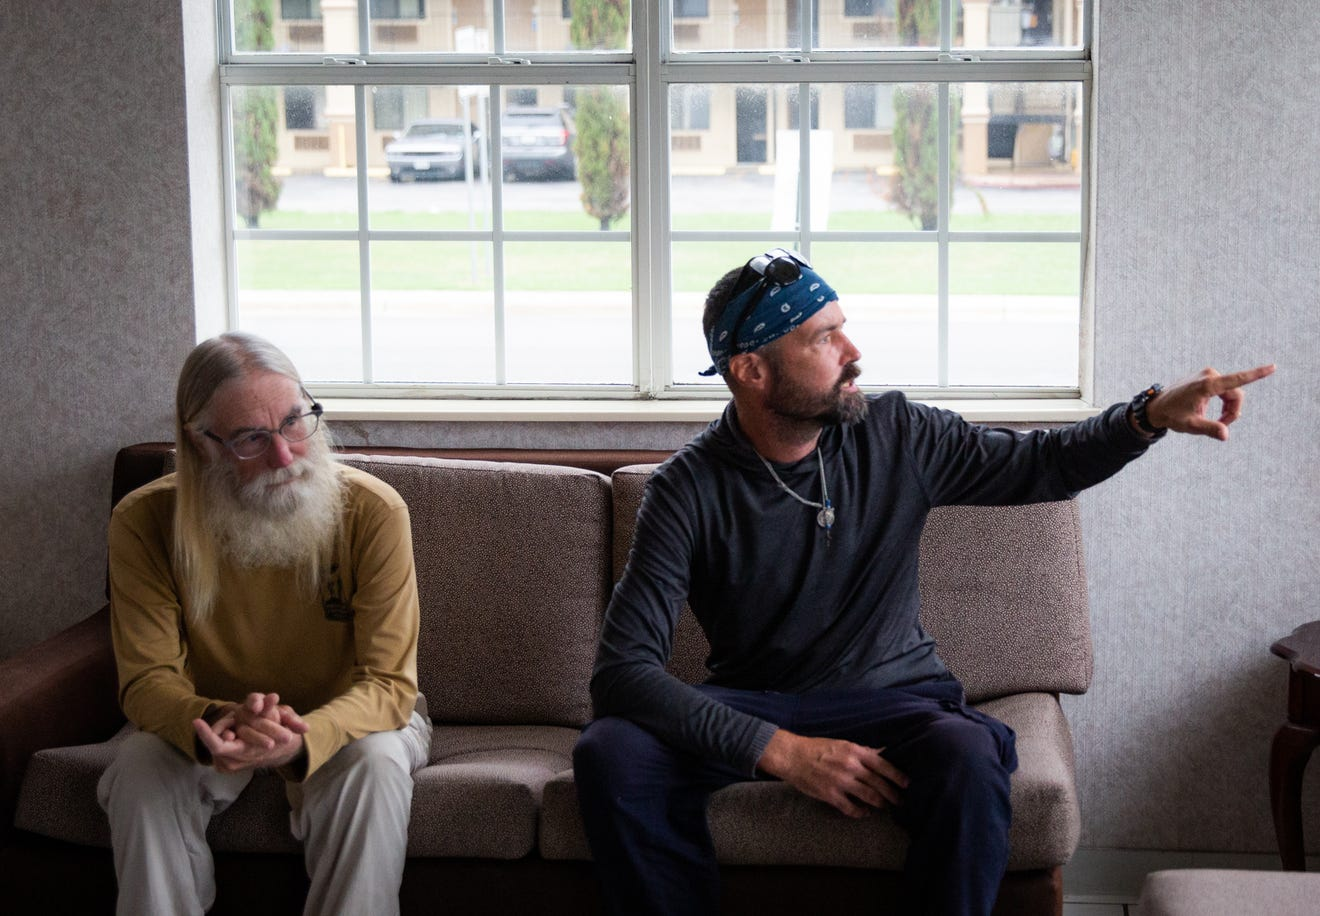 San Marcos nonprofit to fill gaps in homeless outreach, launches transitional housing program